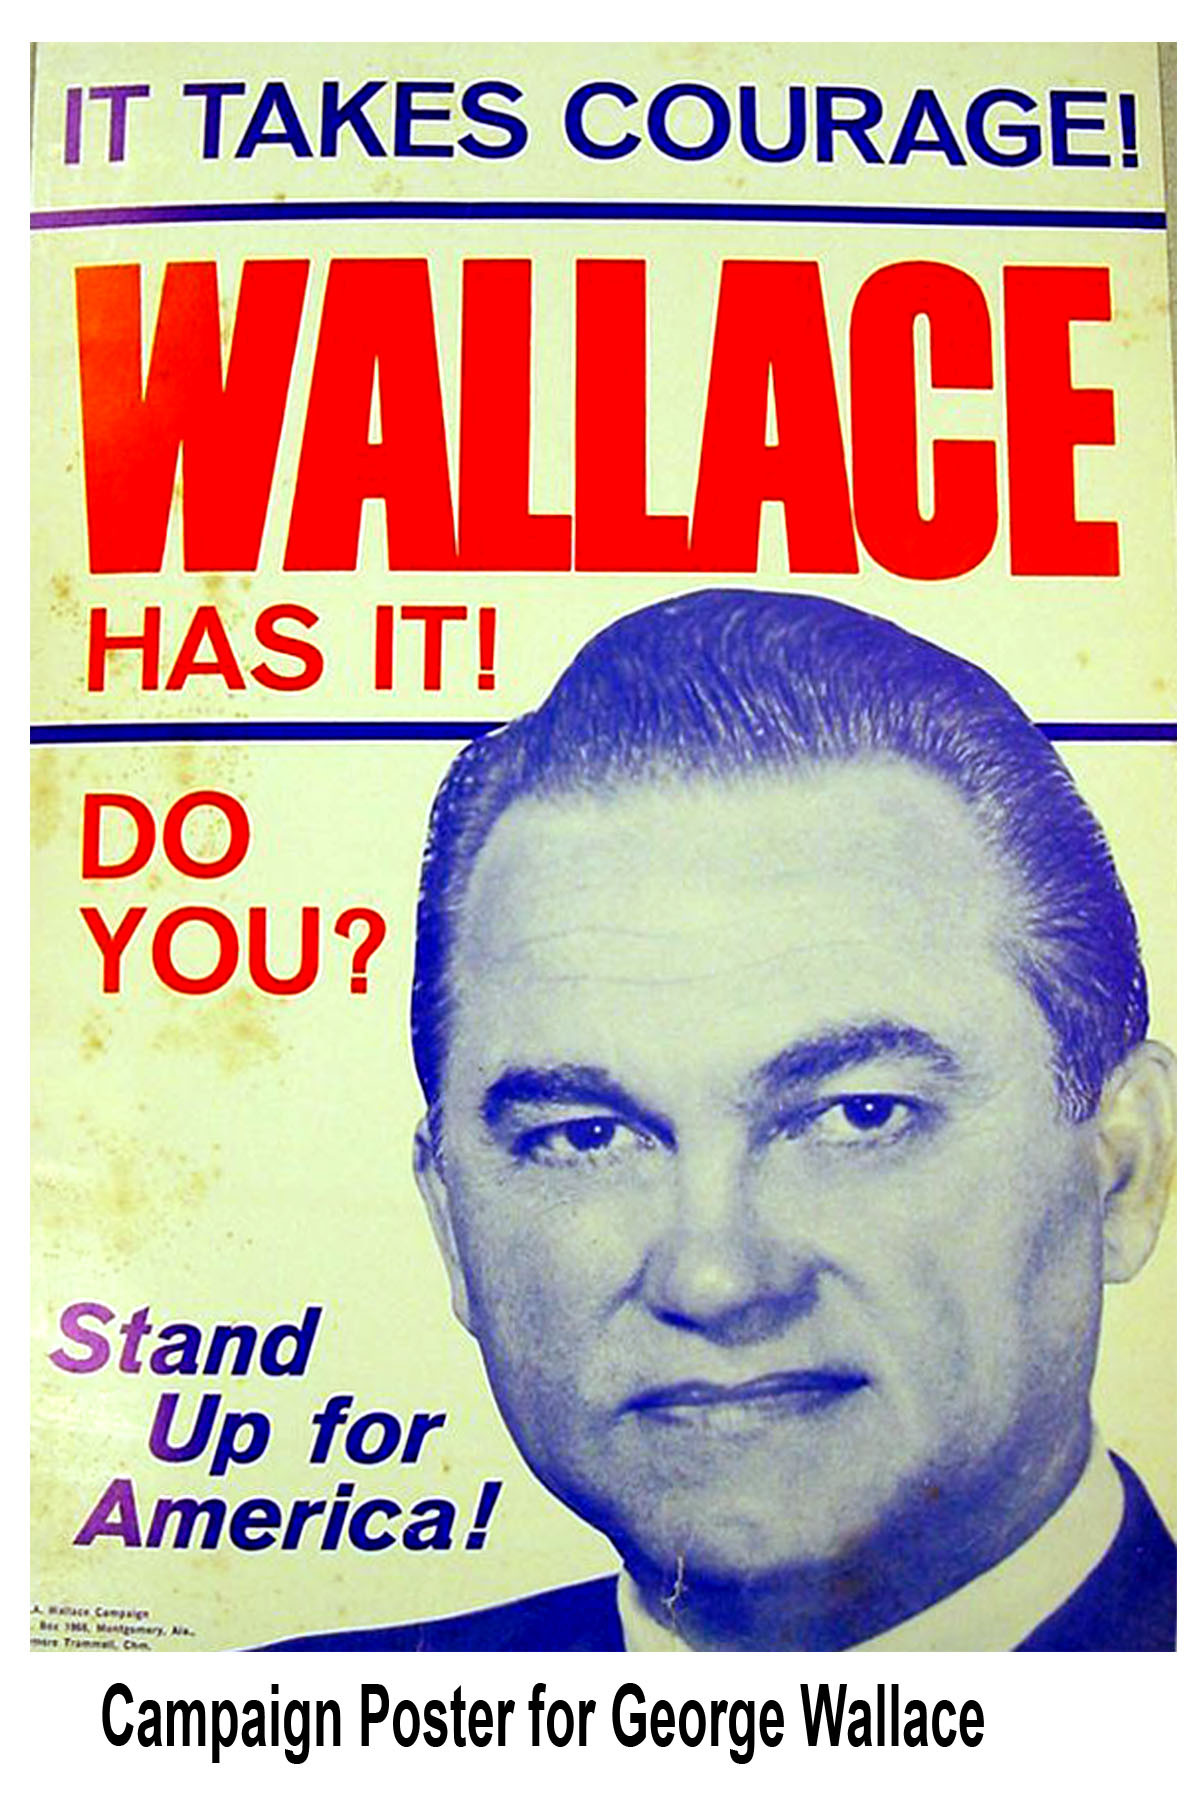 https://i.ibb.co/sW6nt7z/george-wallace-campaign-poster.jpg